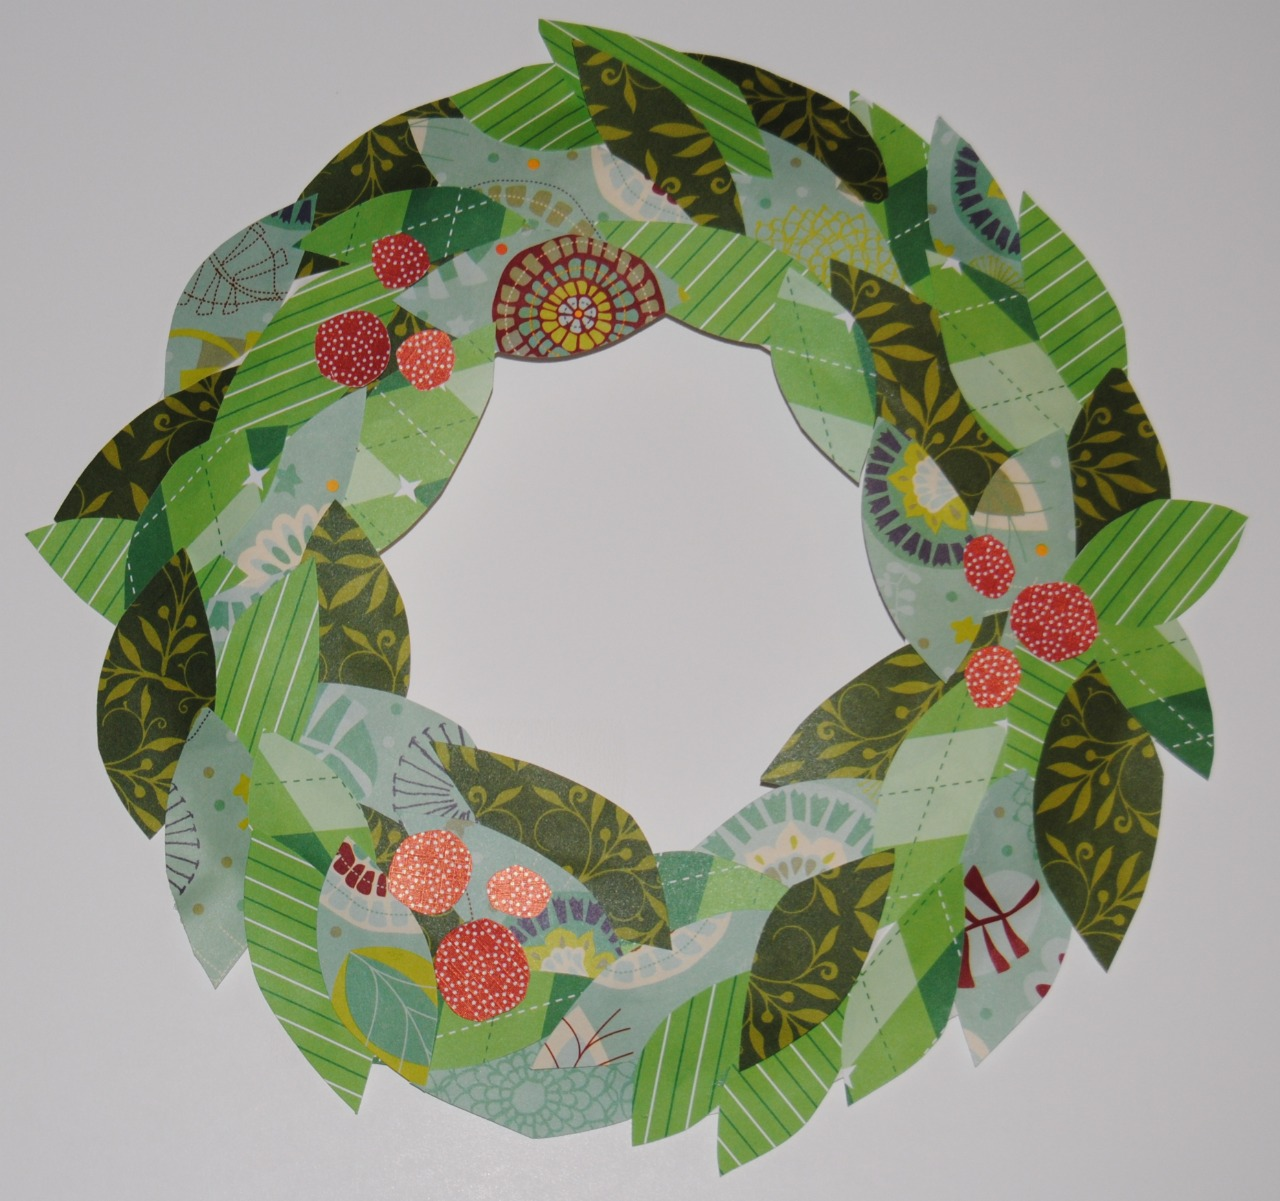 Paper Wreath Craft For Kids